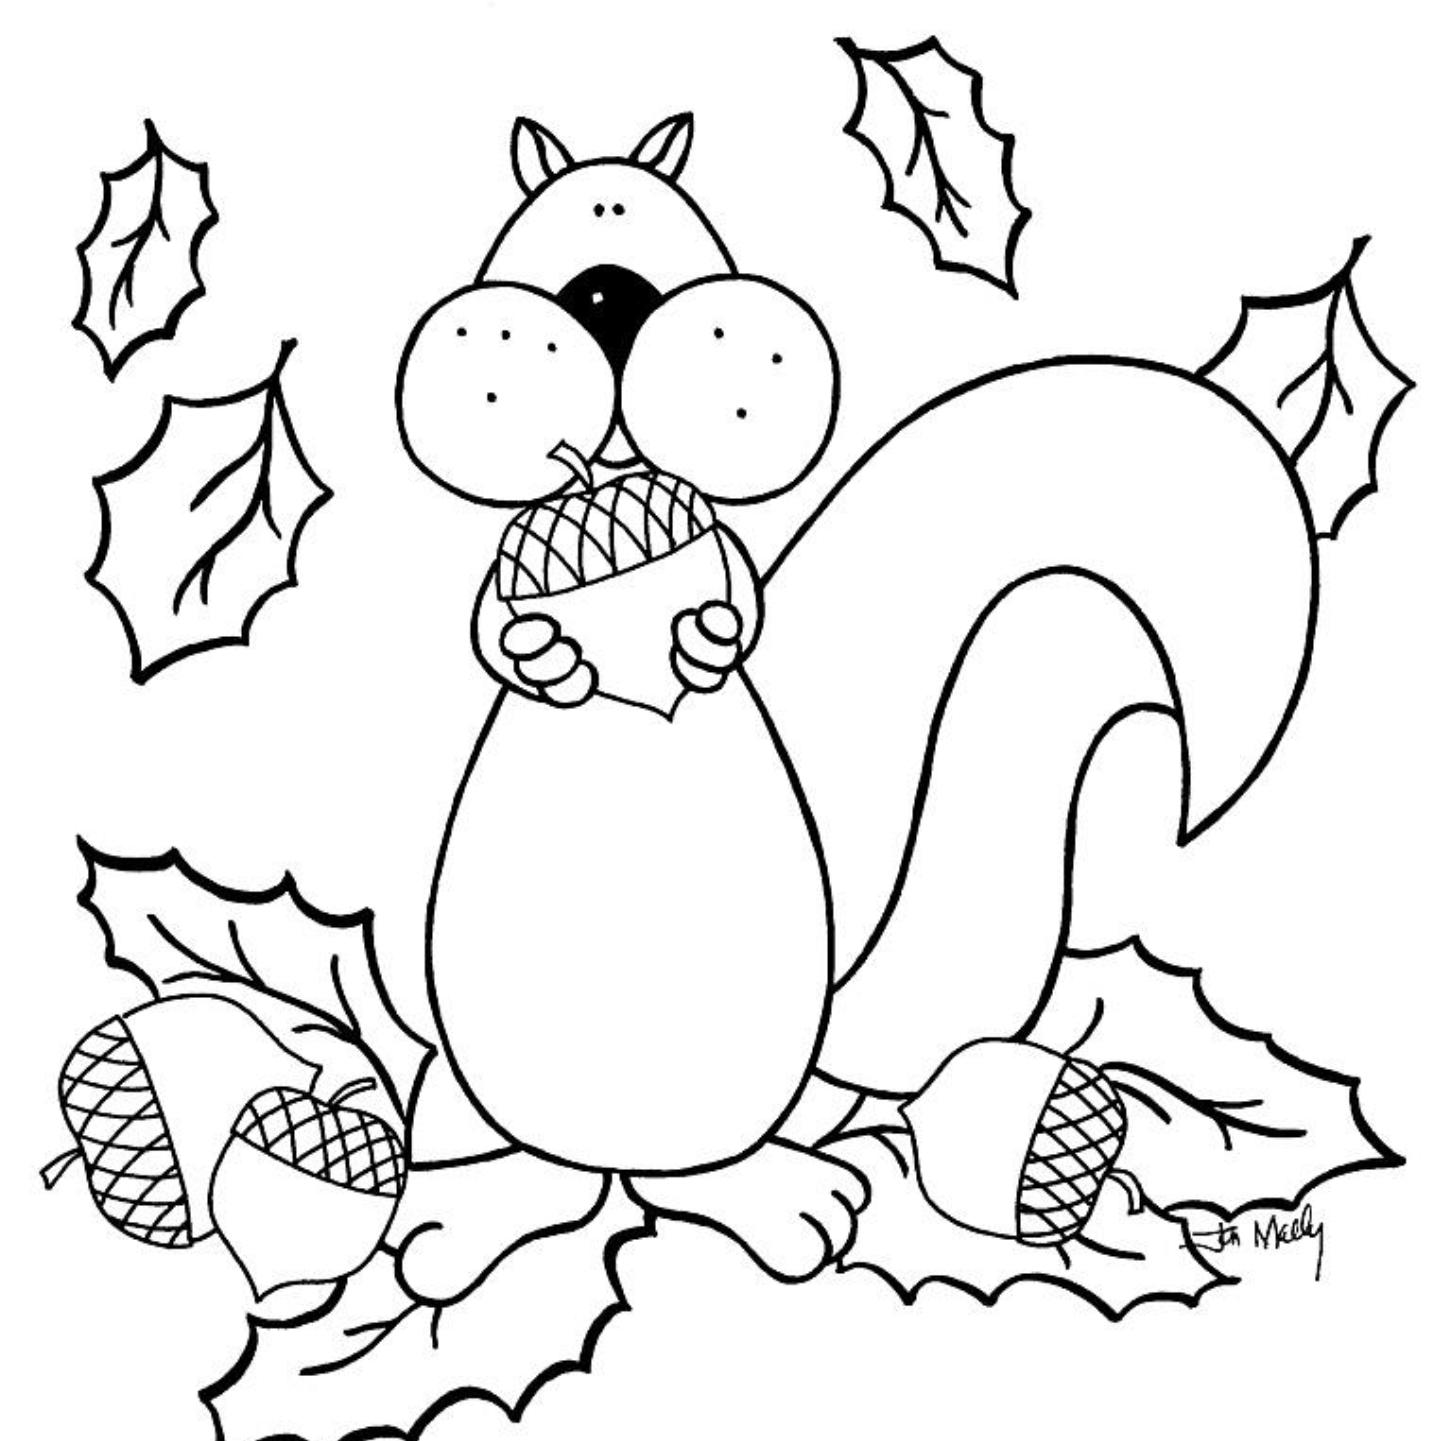 color sheets for fall fall coloring pages for kindergarten learning printable for sheets color fall